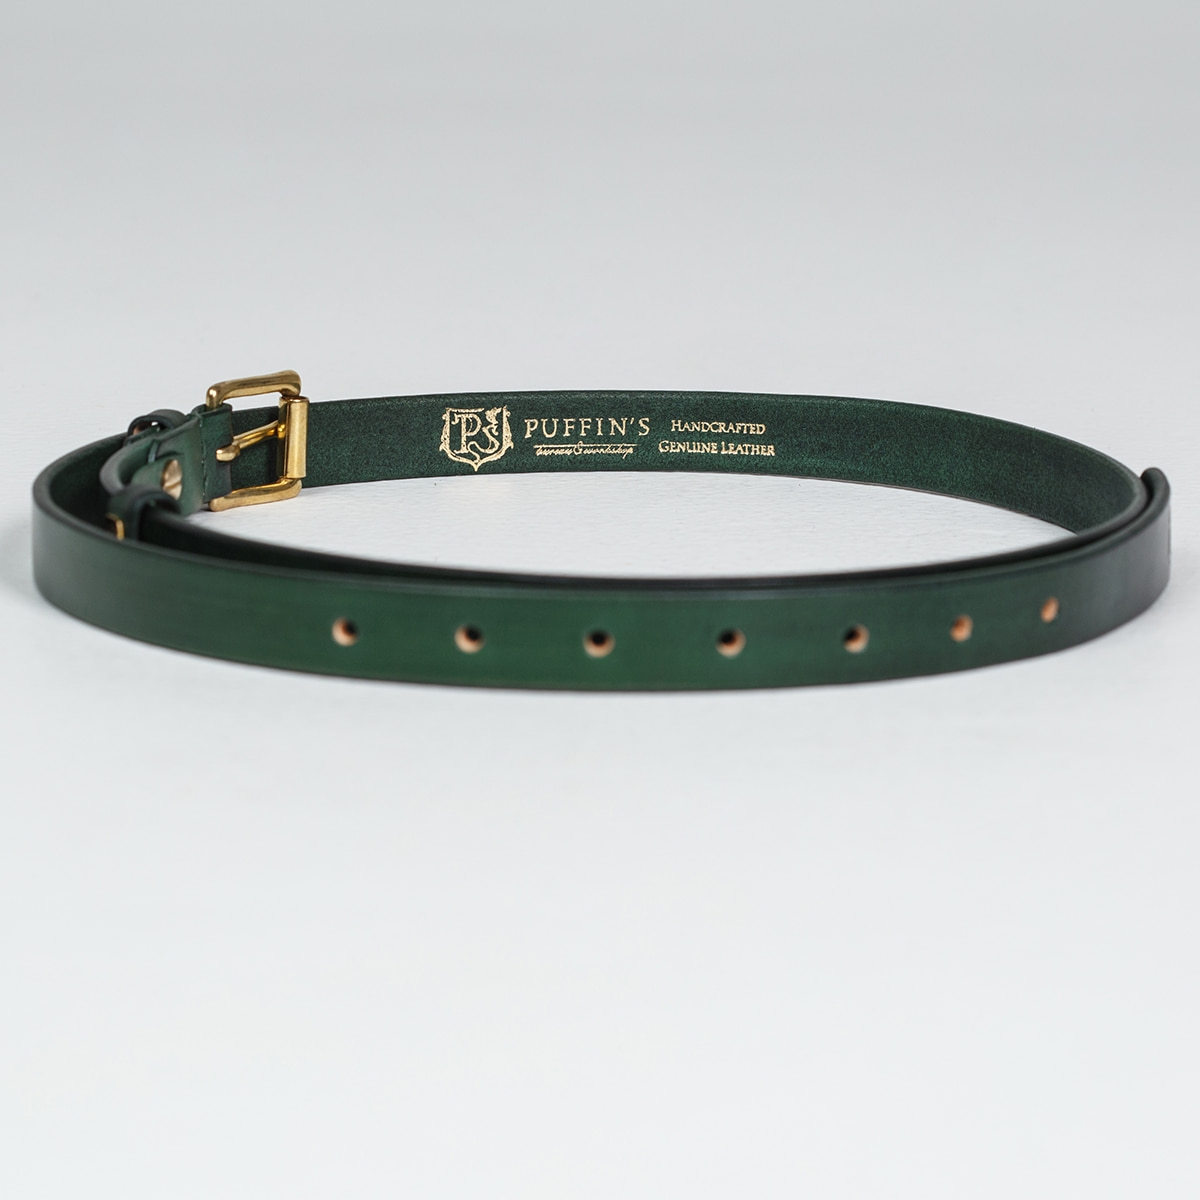 An exquisite 20mm belt with a brass buckle grassy green